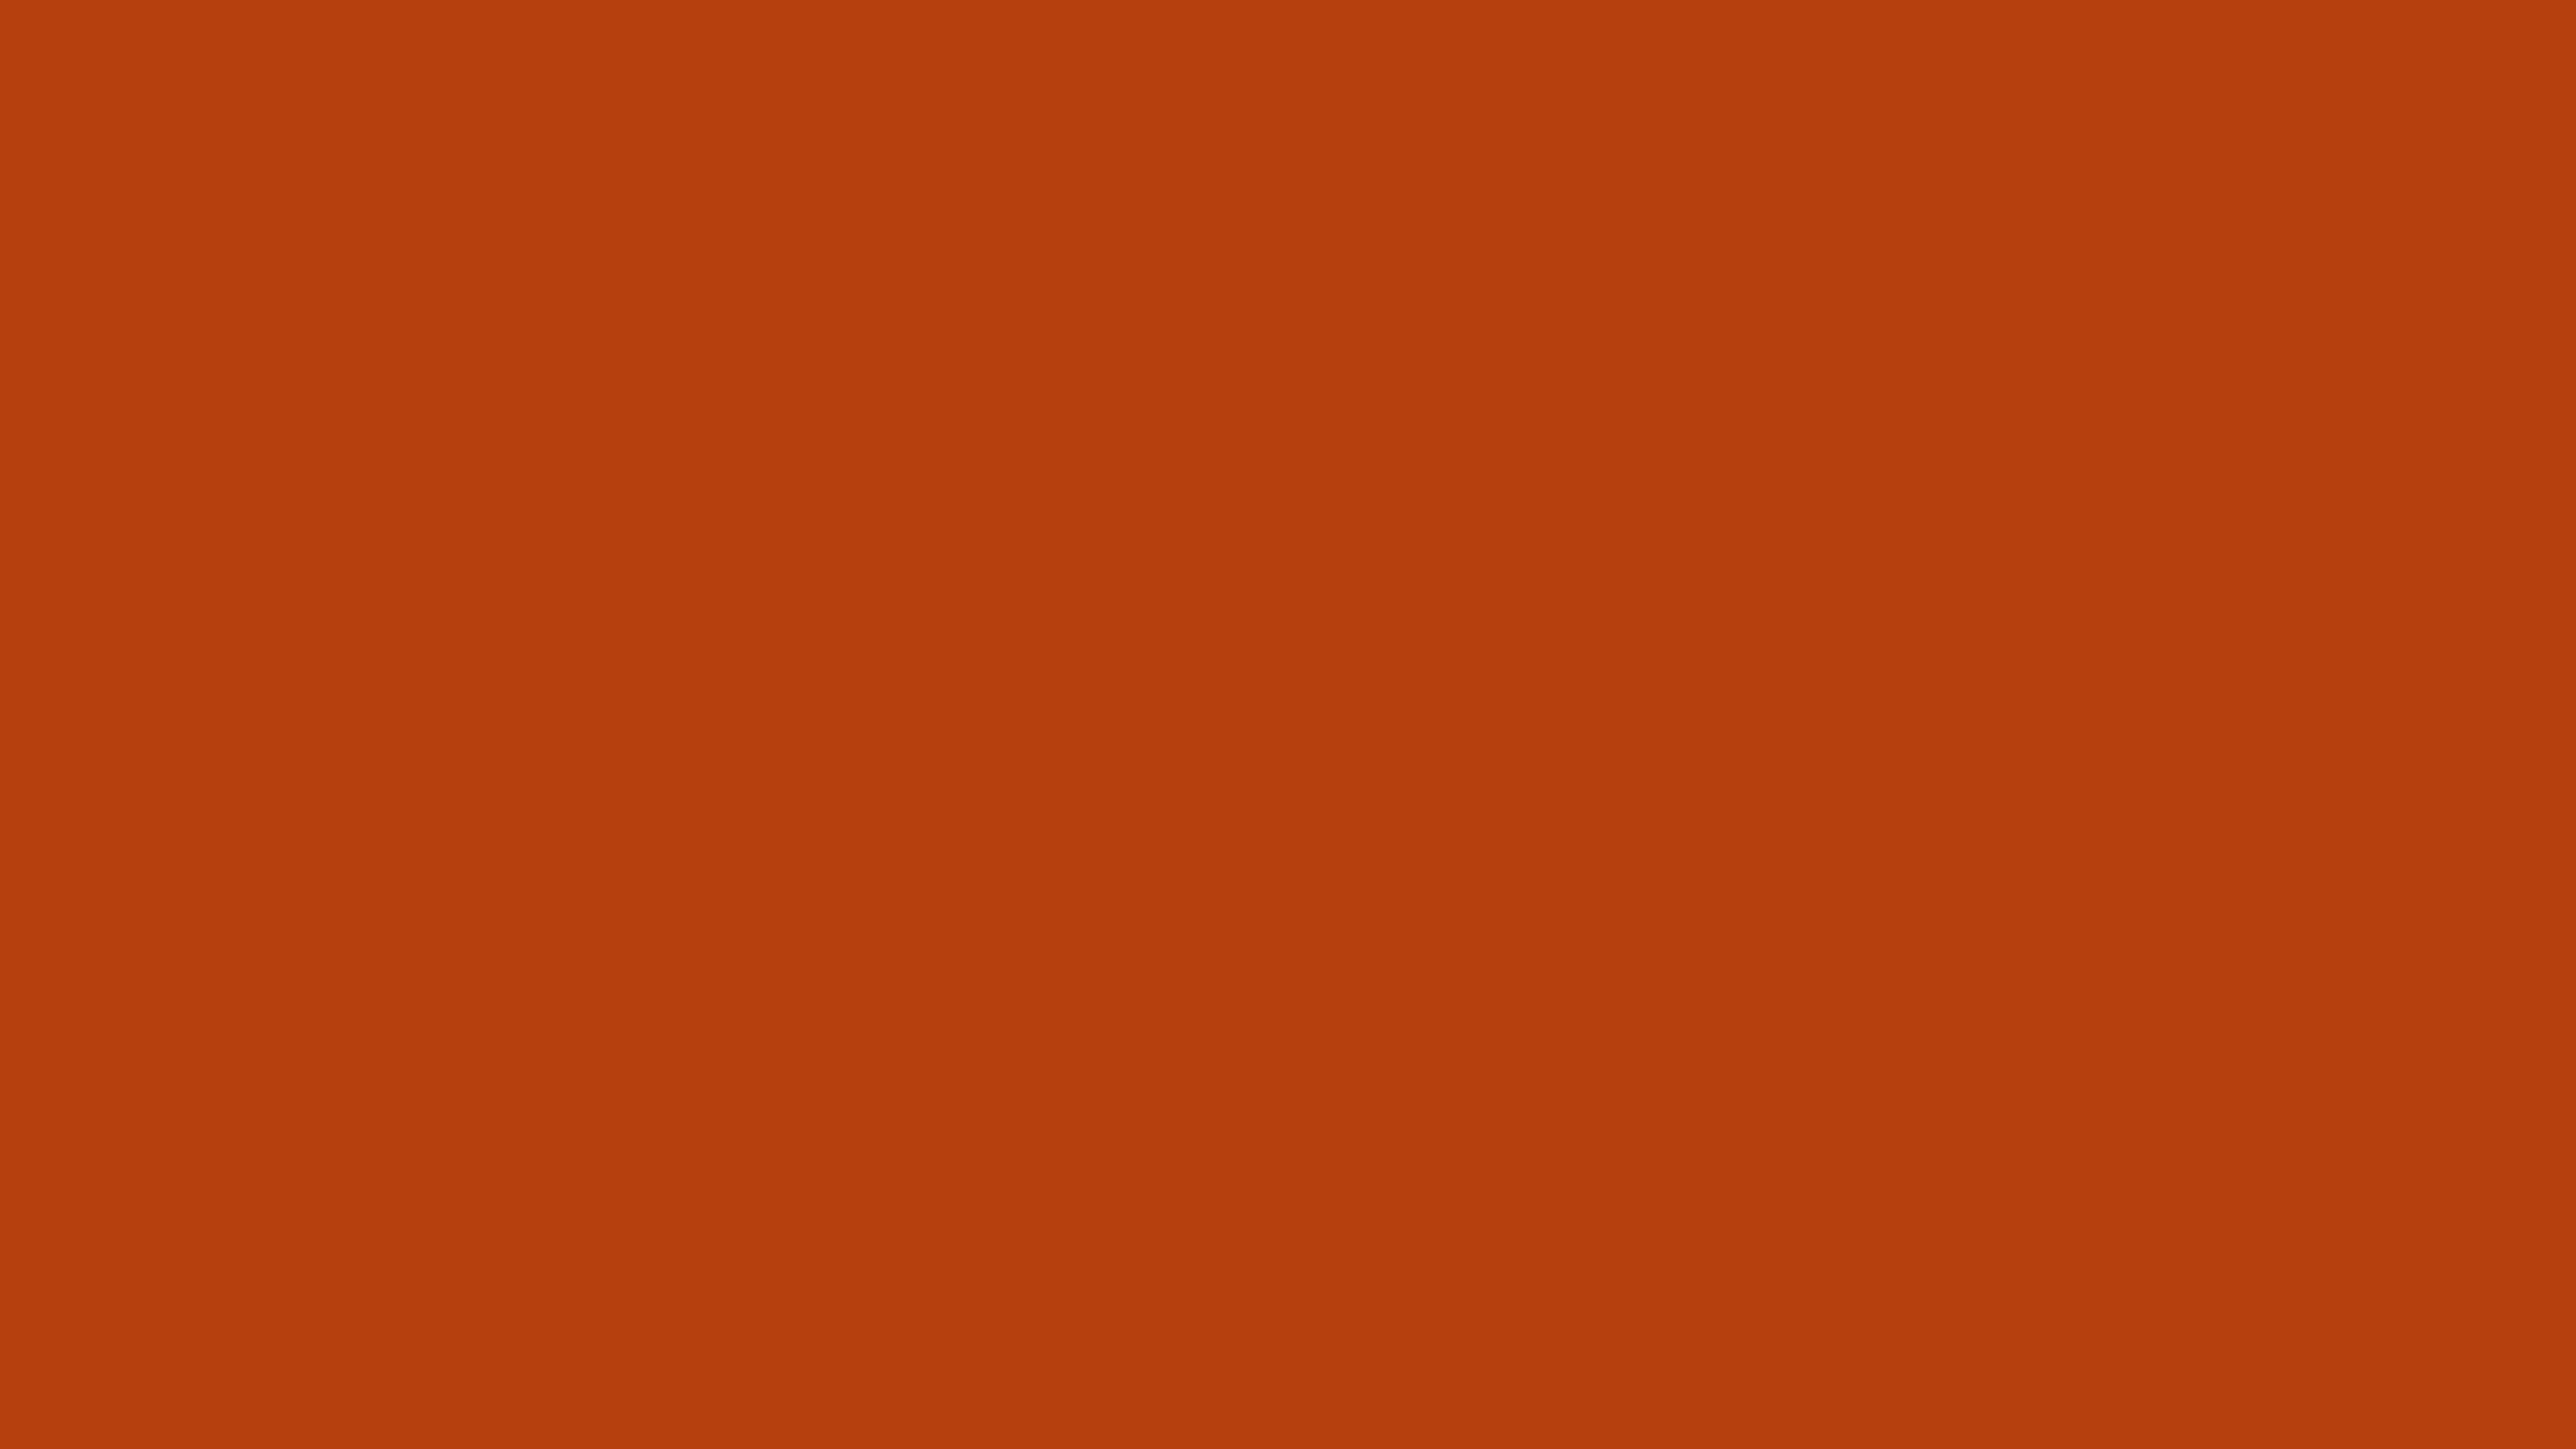 3840x2160 Rust Solid Color Background